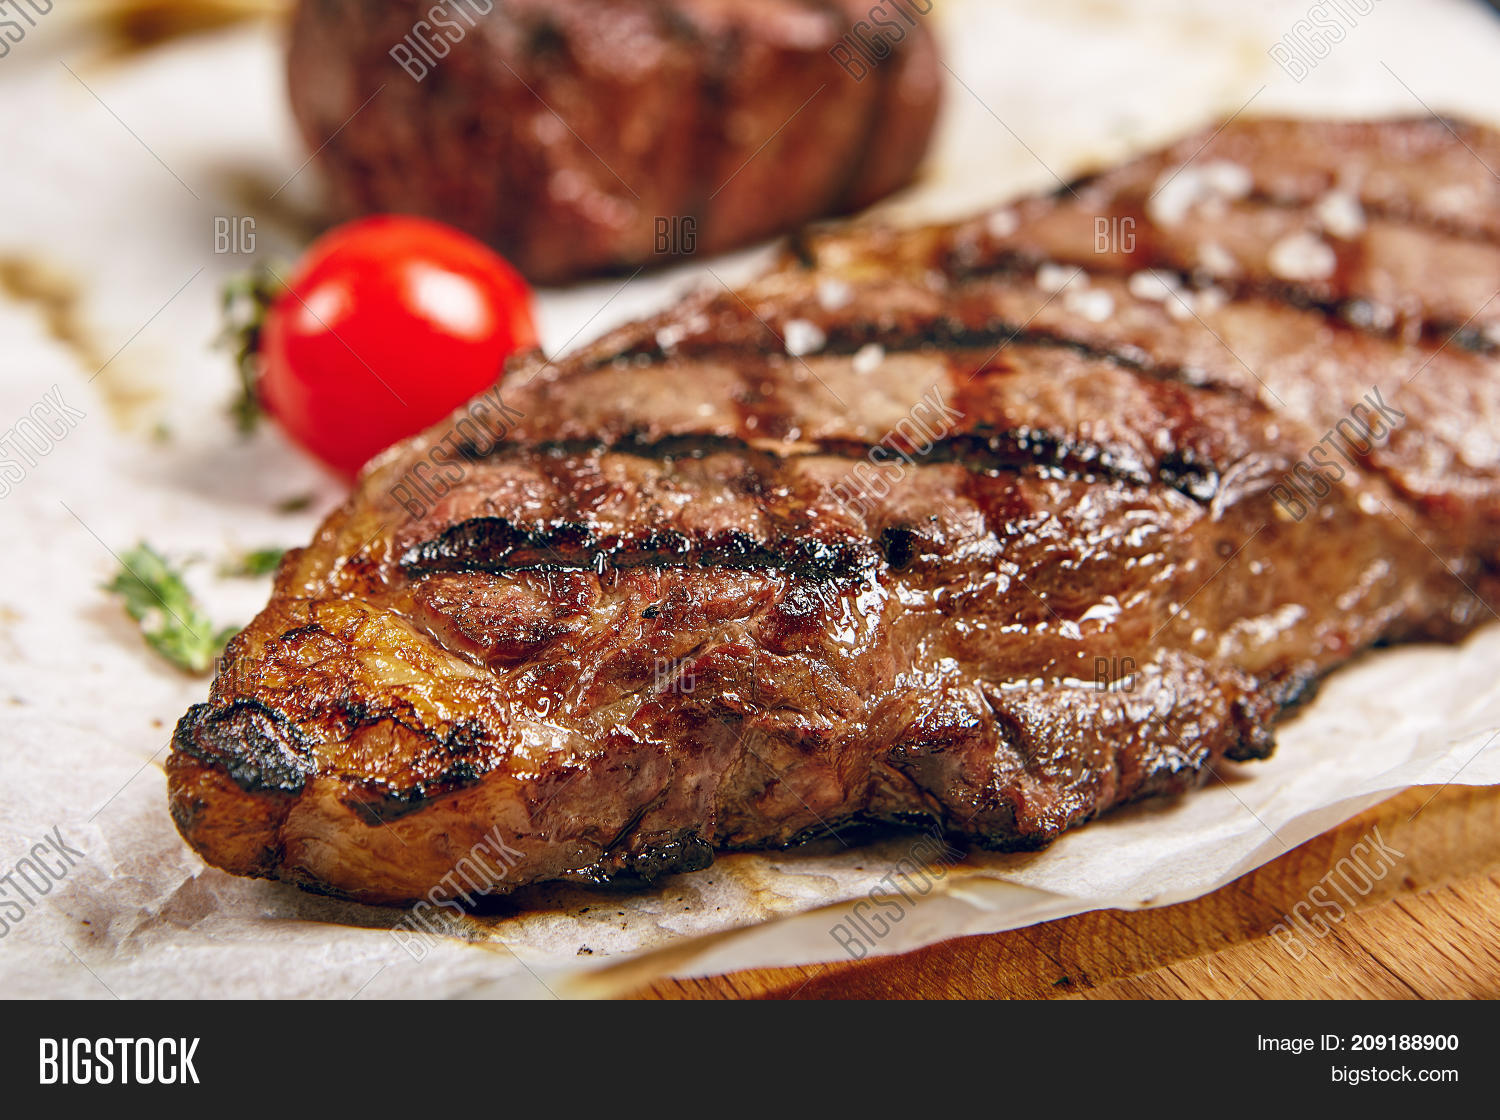 barbecue,bbq,beef,best,black angus,board,braai,cooked,delicious,dinner,dish,eating,filet,fillet,food,gastronomy,grill,grilled,ingredients,kansas city,light,lunch,meal,meat,menu,new york,new york stake,new york strip steak,nutrition,pepper,photo,pic,plate,prime,rare,restaurant,rib eye,roast,seasoning,sirloin,steak,steak house,steakhouse,strip,table,taste,tasty,tender,tenderloin,tomato